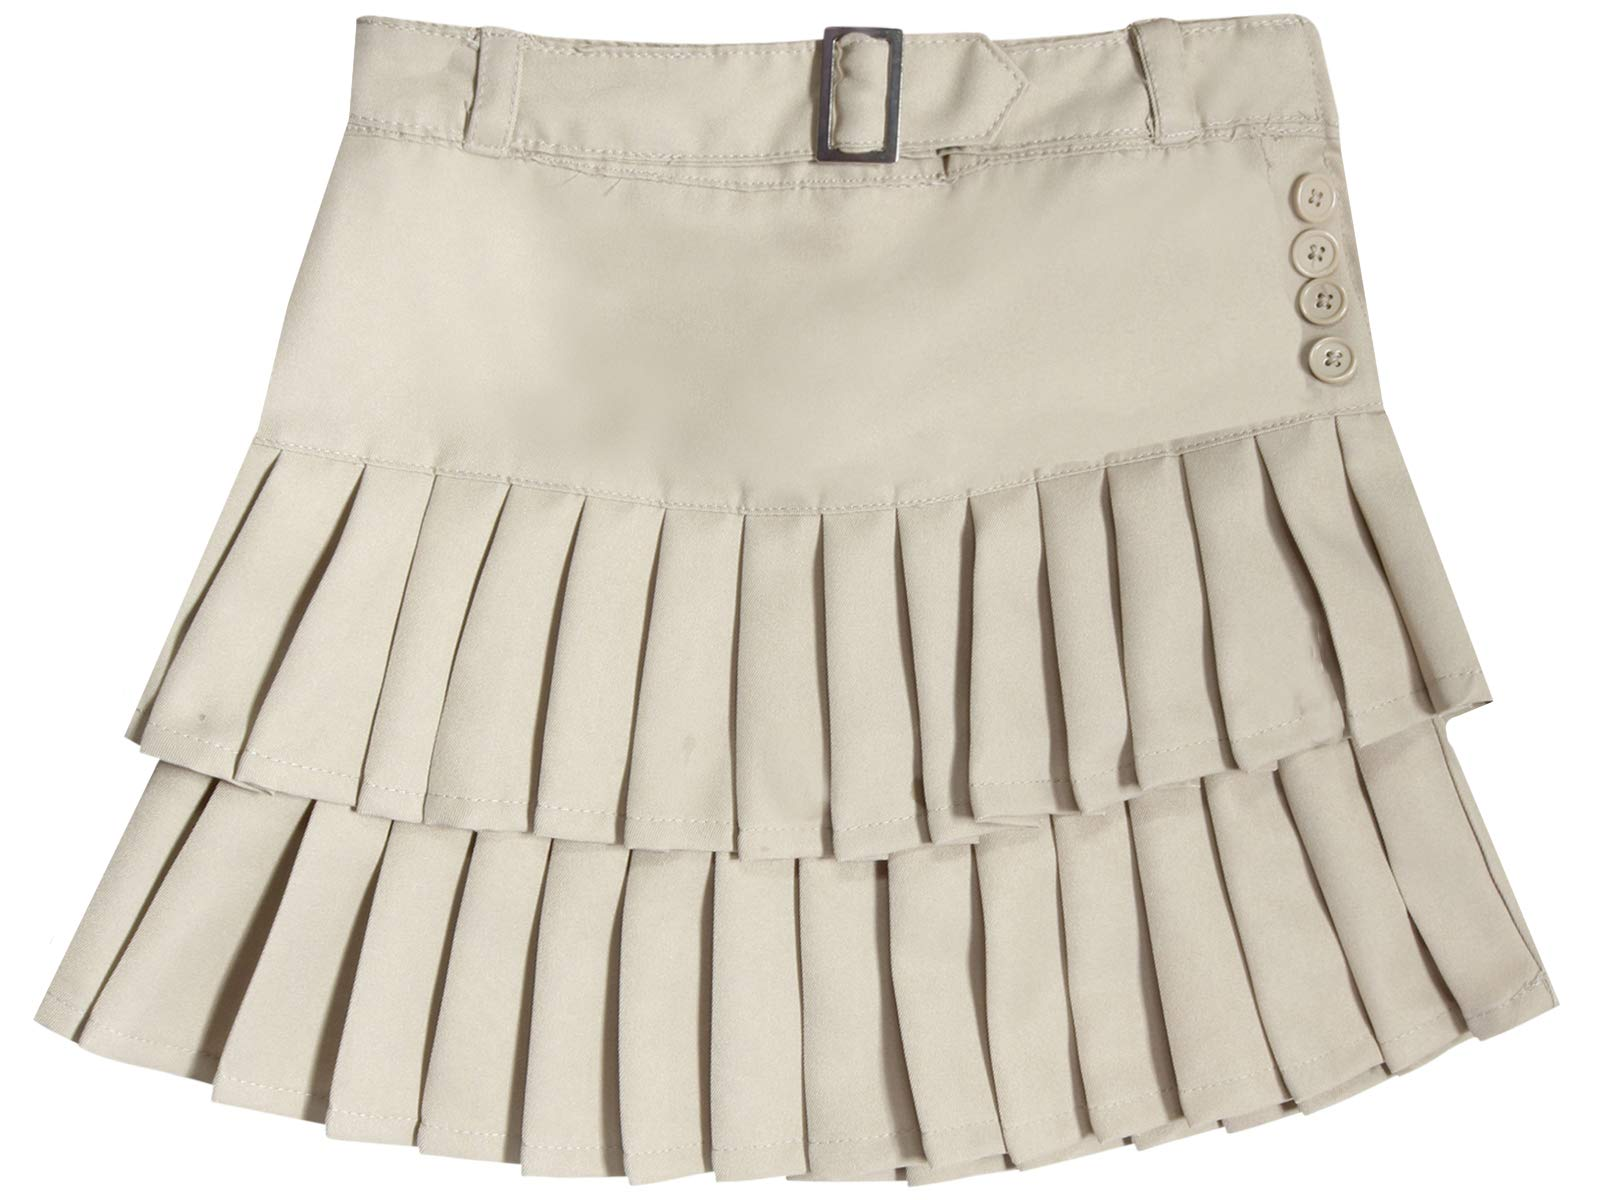 'Beverly Hills Polo Club Girls School Uniform Belted Low Pleat Scooter, Khaki, Size 10'